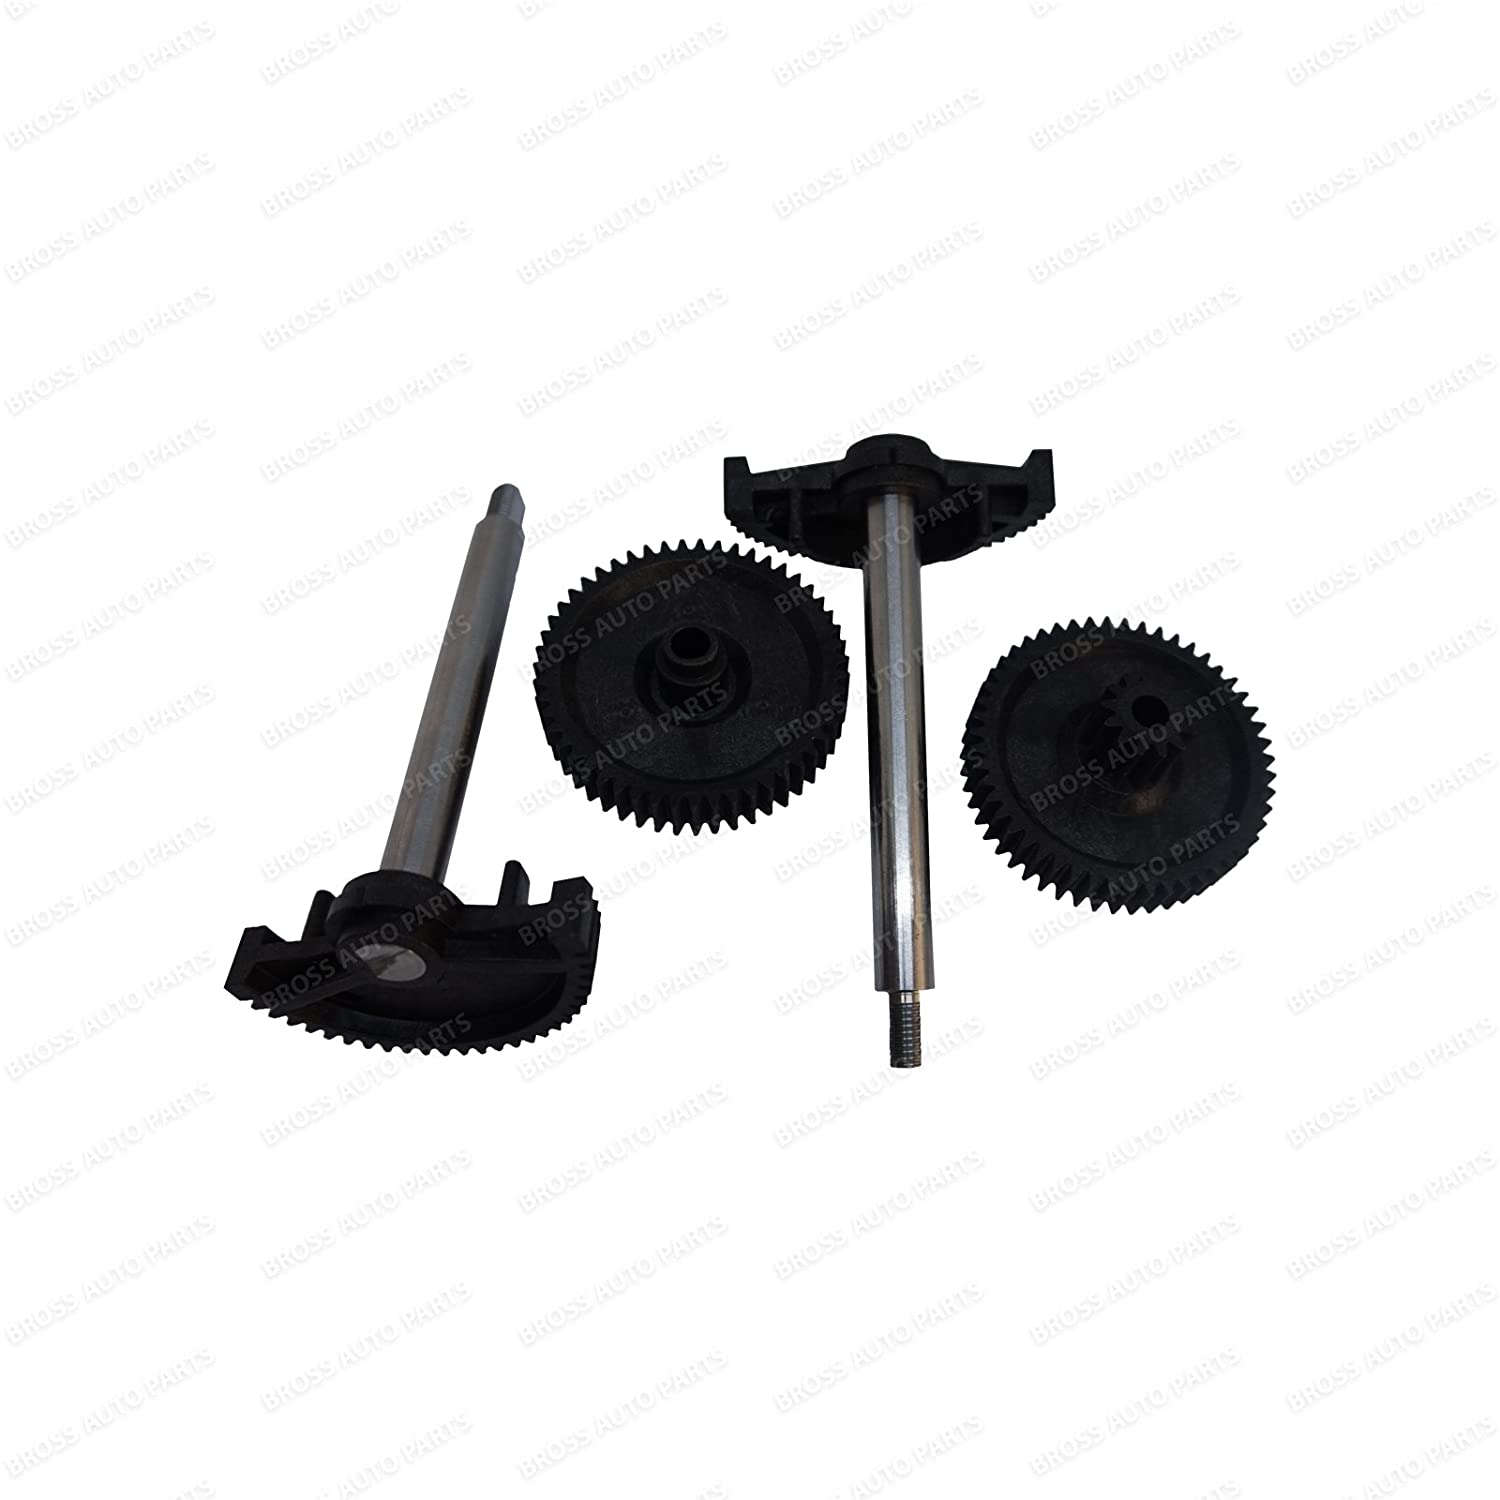 Bross BGE38 2 Sets 4 Pieces Throttle Body Actuator Gear Repair Kit for BMW 13627838085, 13627834494, 13627834494 Bross Auto Parts